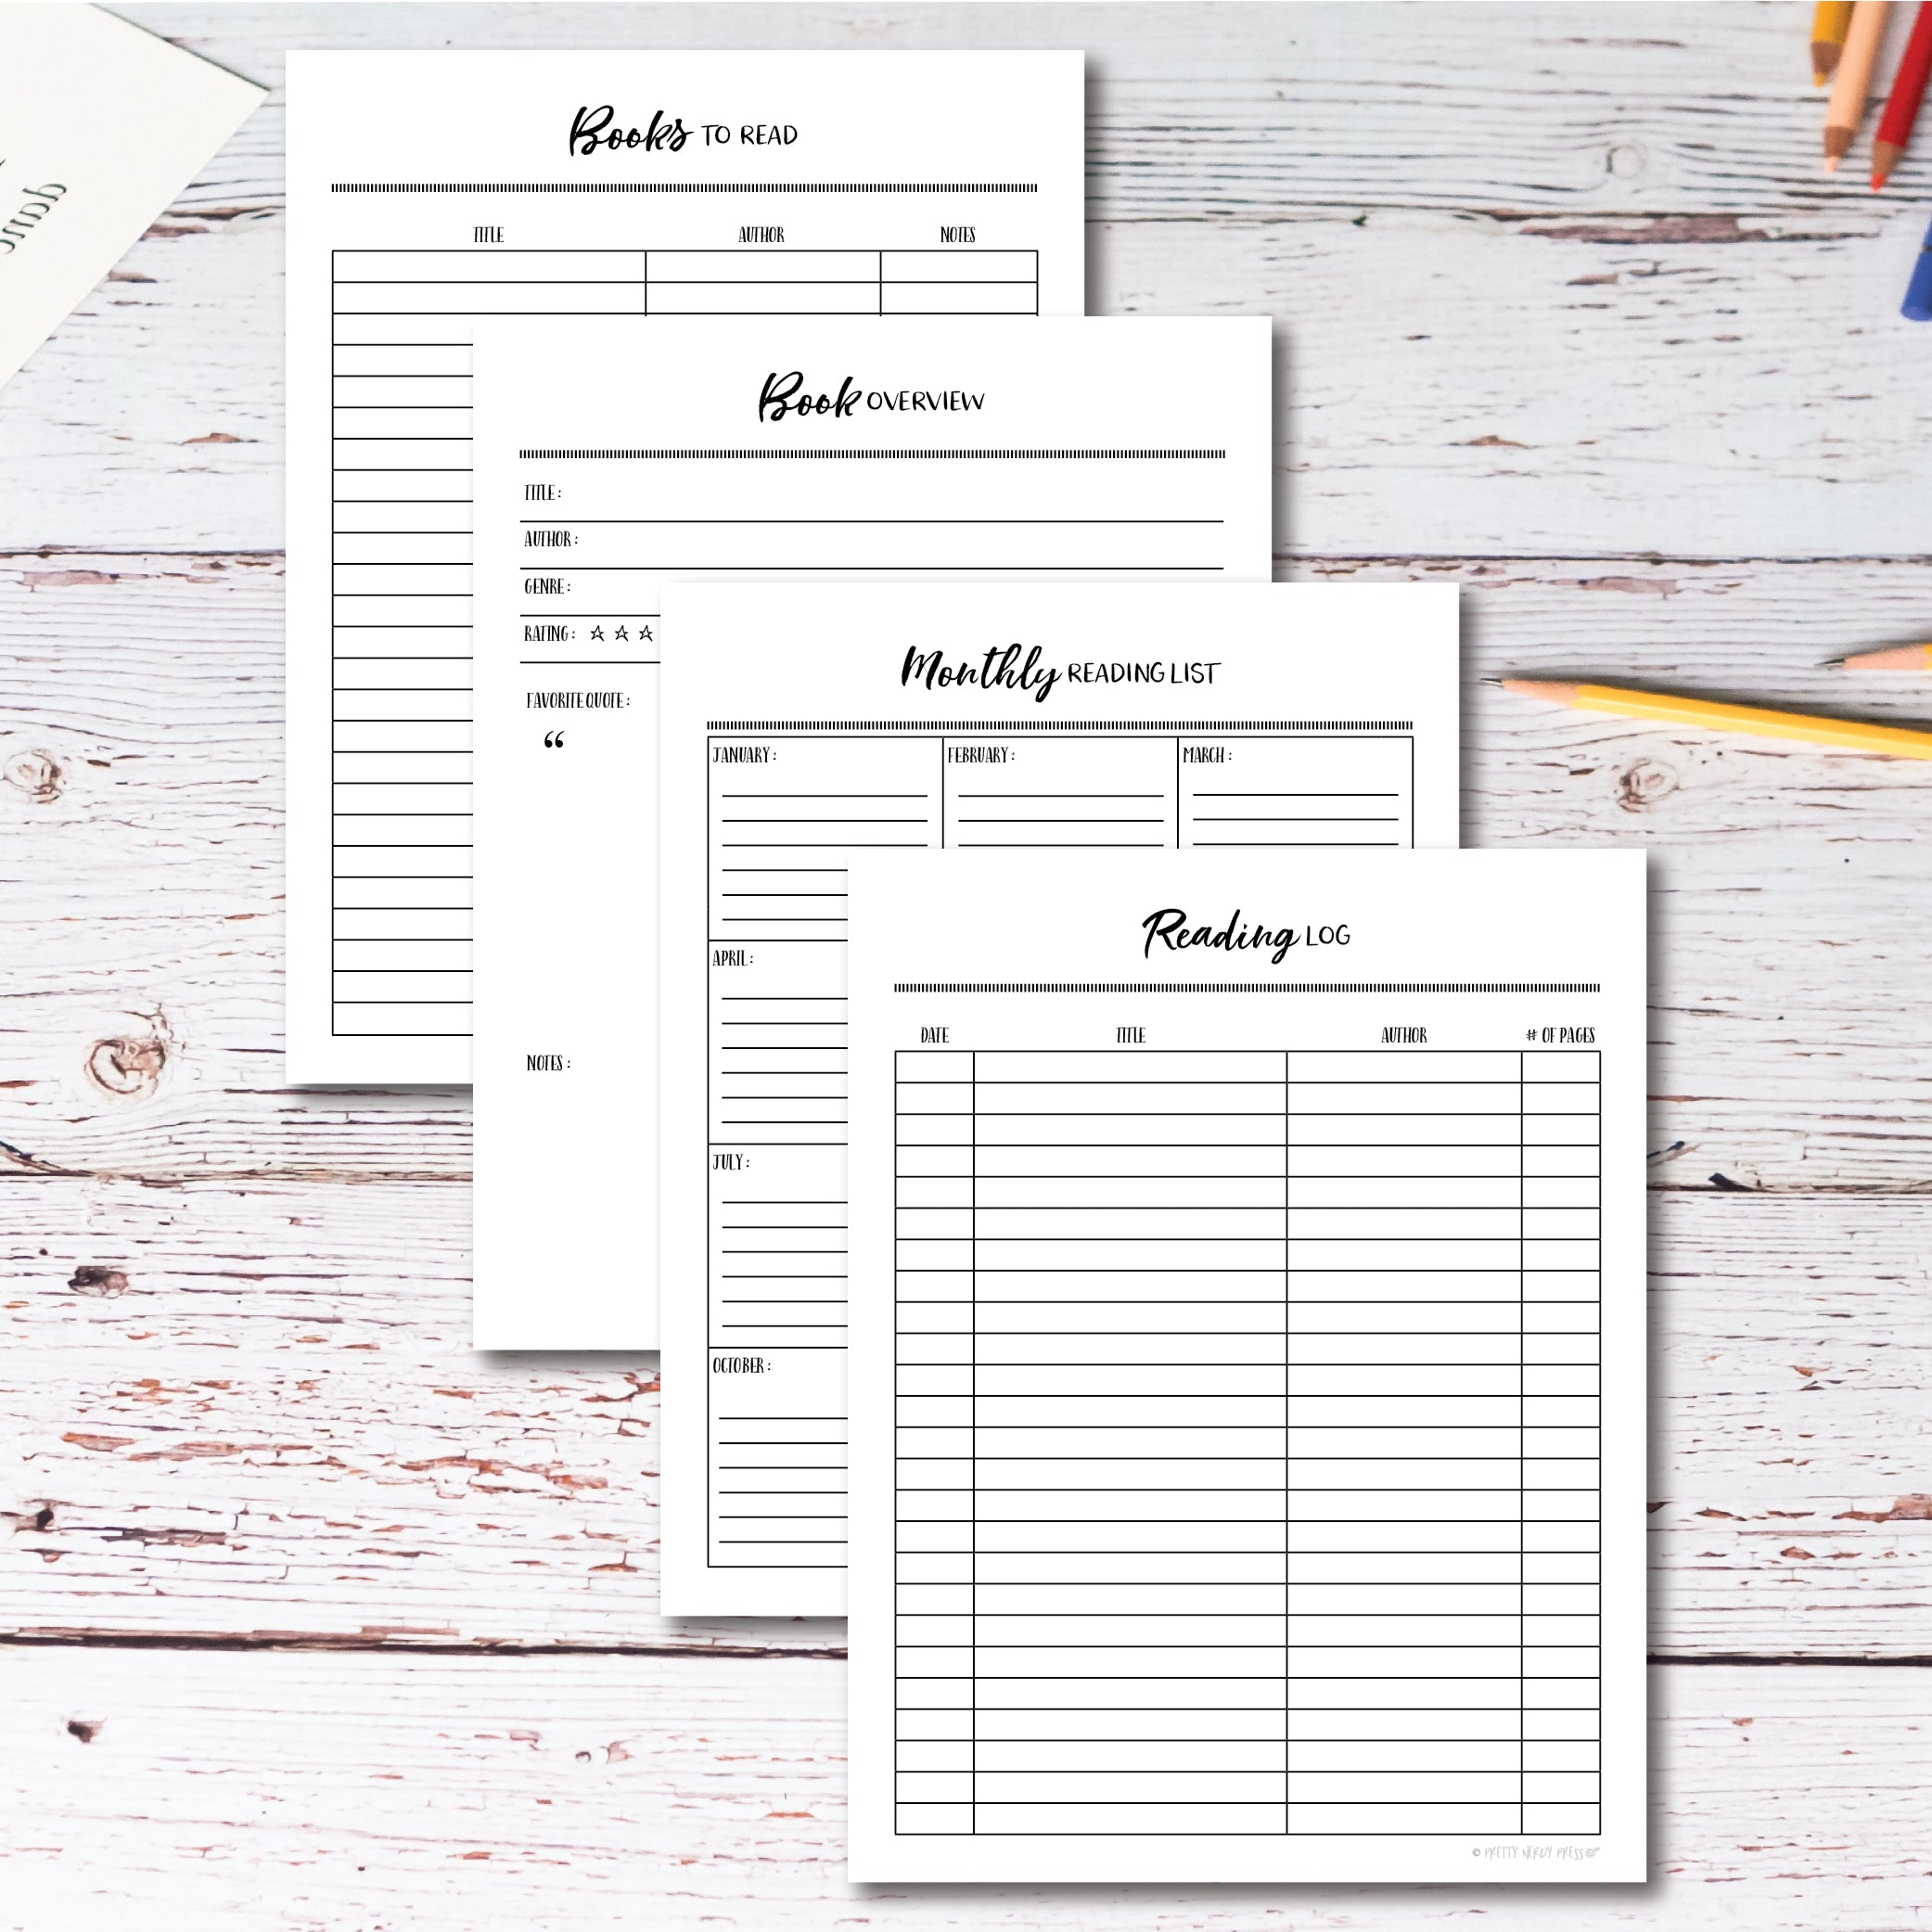 photograph about Reading Log Printable identify Looking at Log Printable Purpose-Ecosystem Worksheets Wonderful